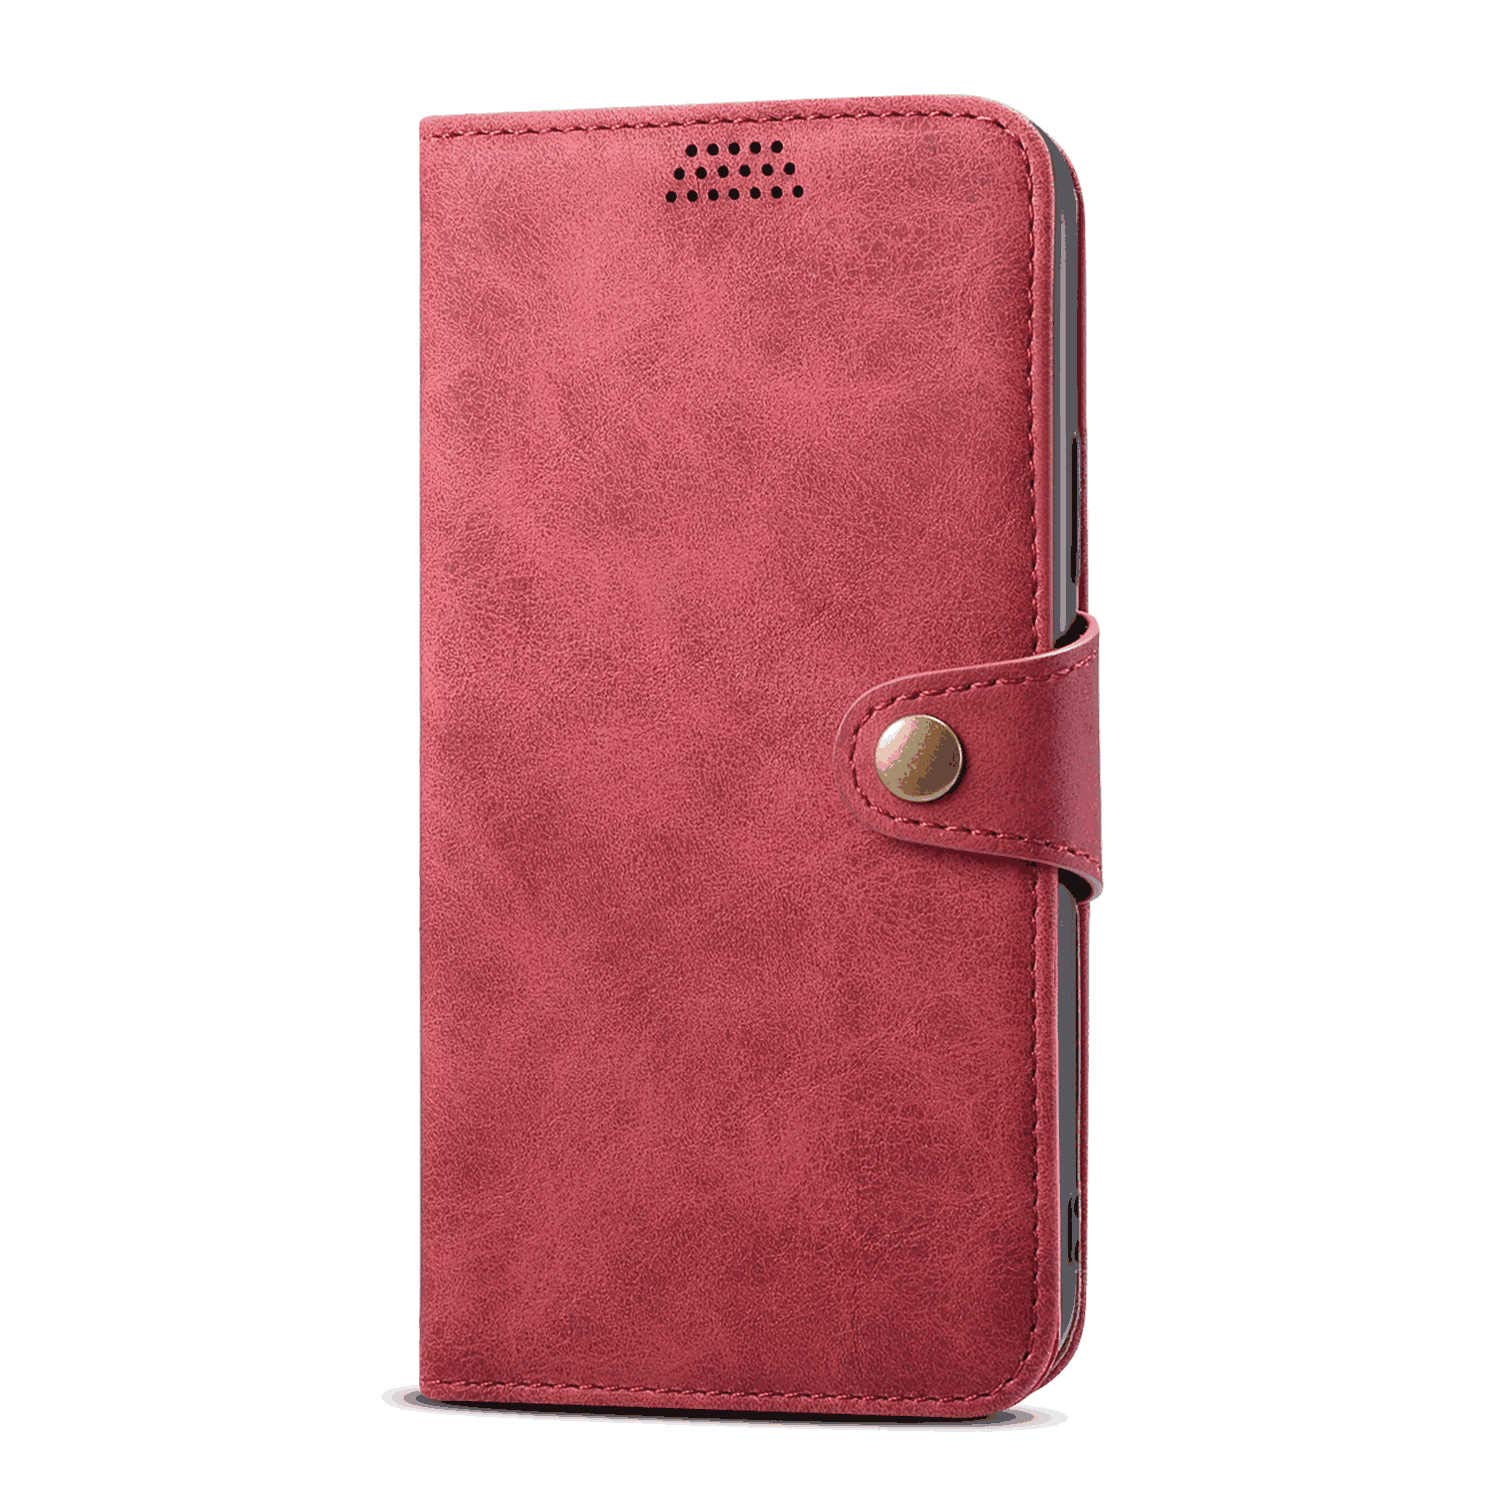 Leather Flip Case Fit for iPhone 11 Pro, red Wallet Cover for iPhone 11 Pro